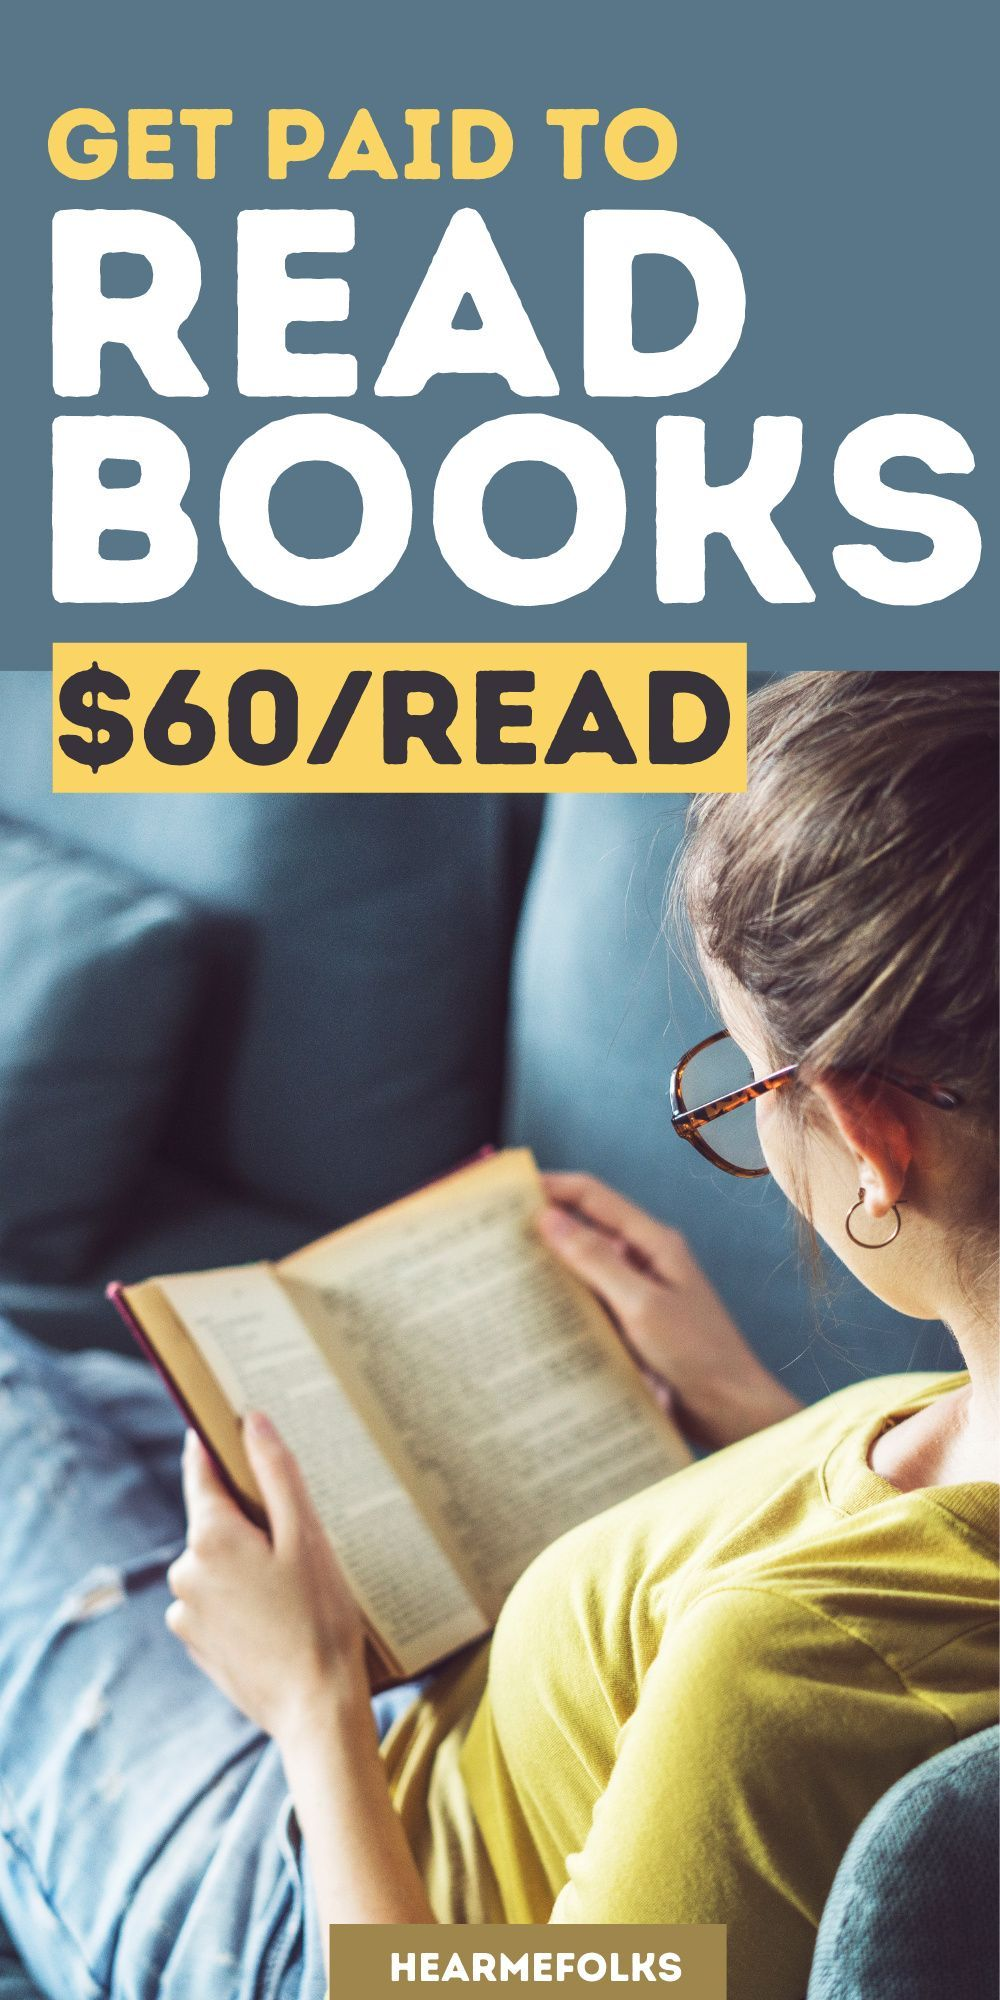 Get Paid to Read Books - 12 Unusual Ways in 2020!